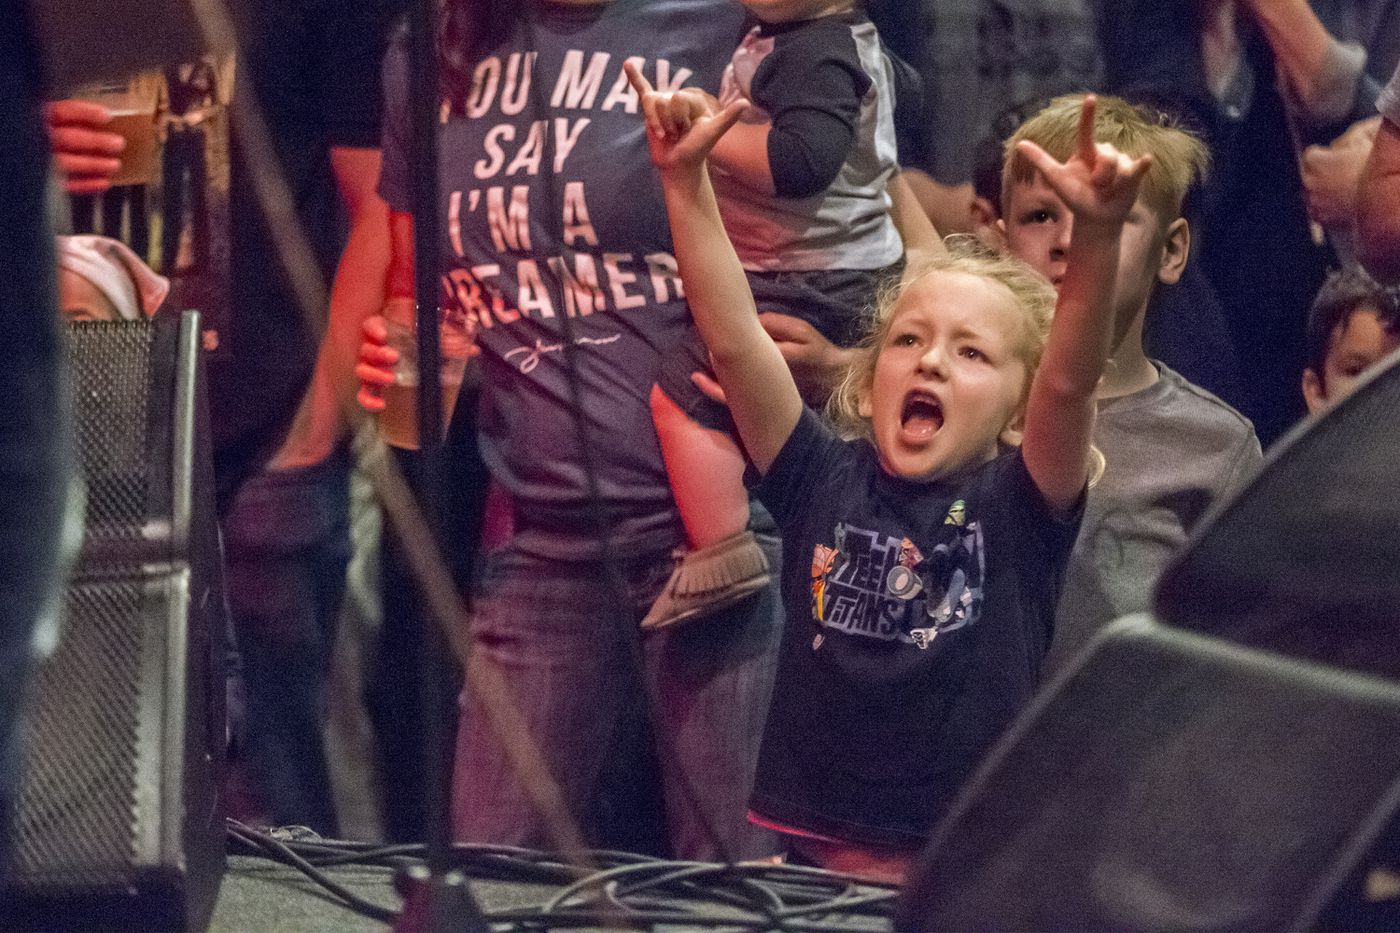 Hopped up on fruit snacks, tiny fans rock out to Grateful Dead, Beatles at concerts for kids